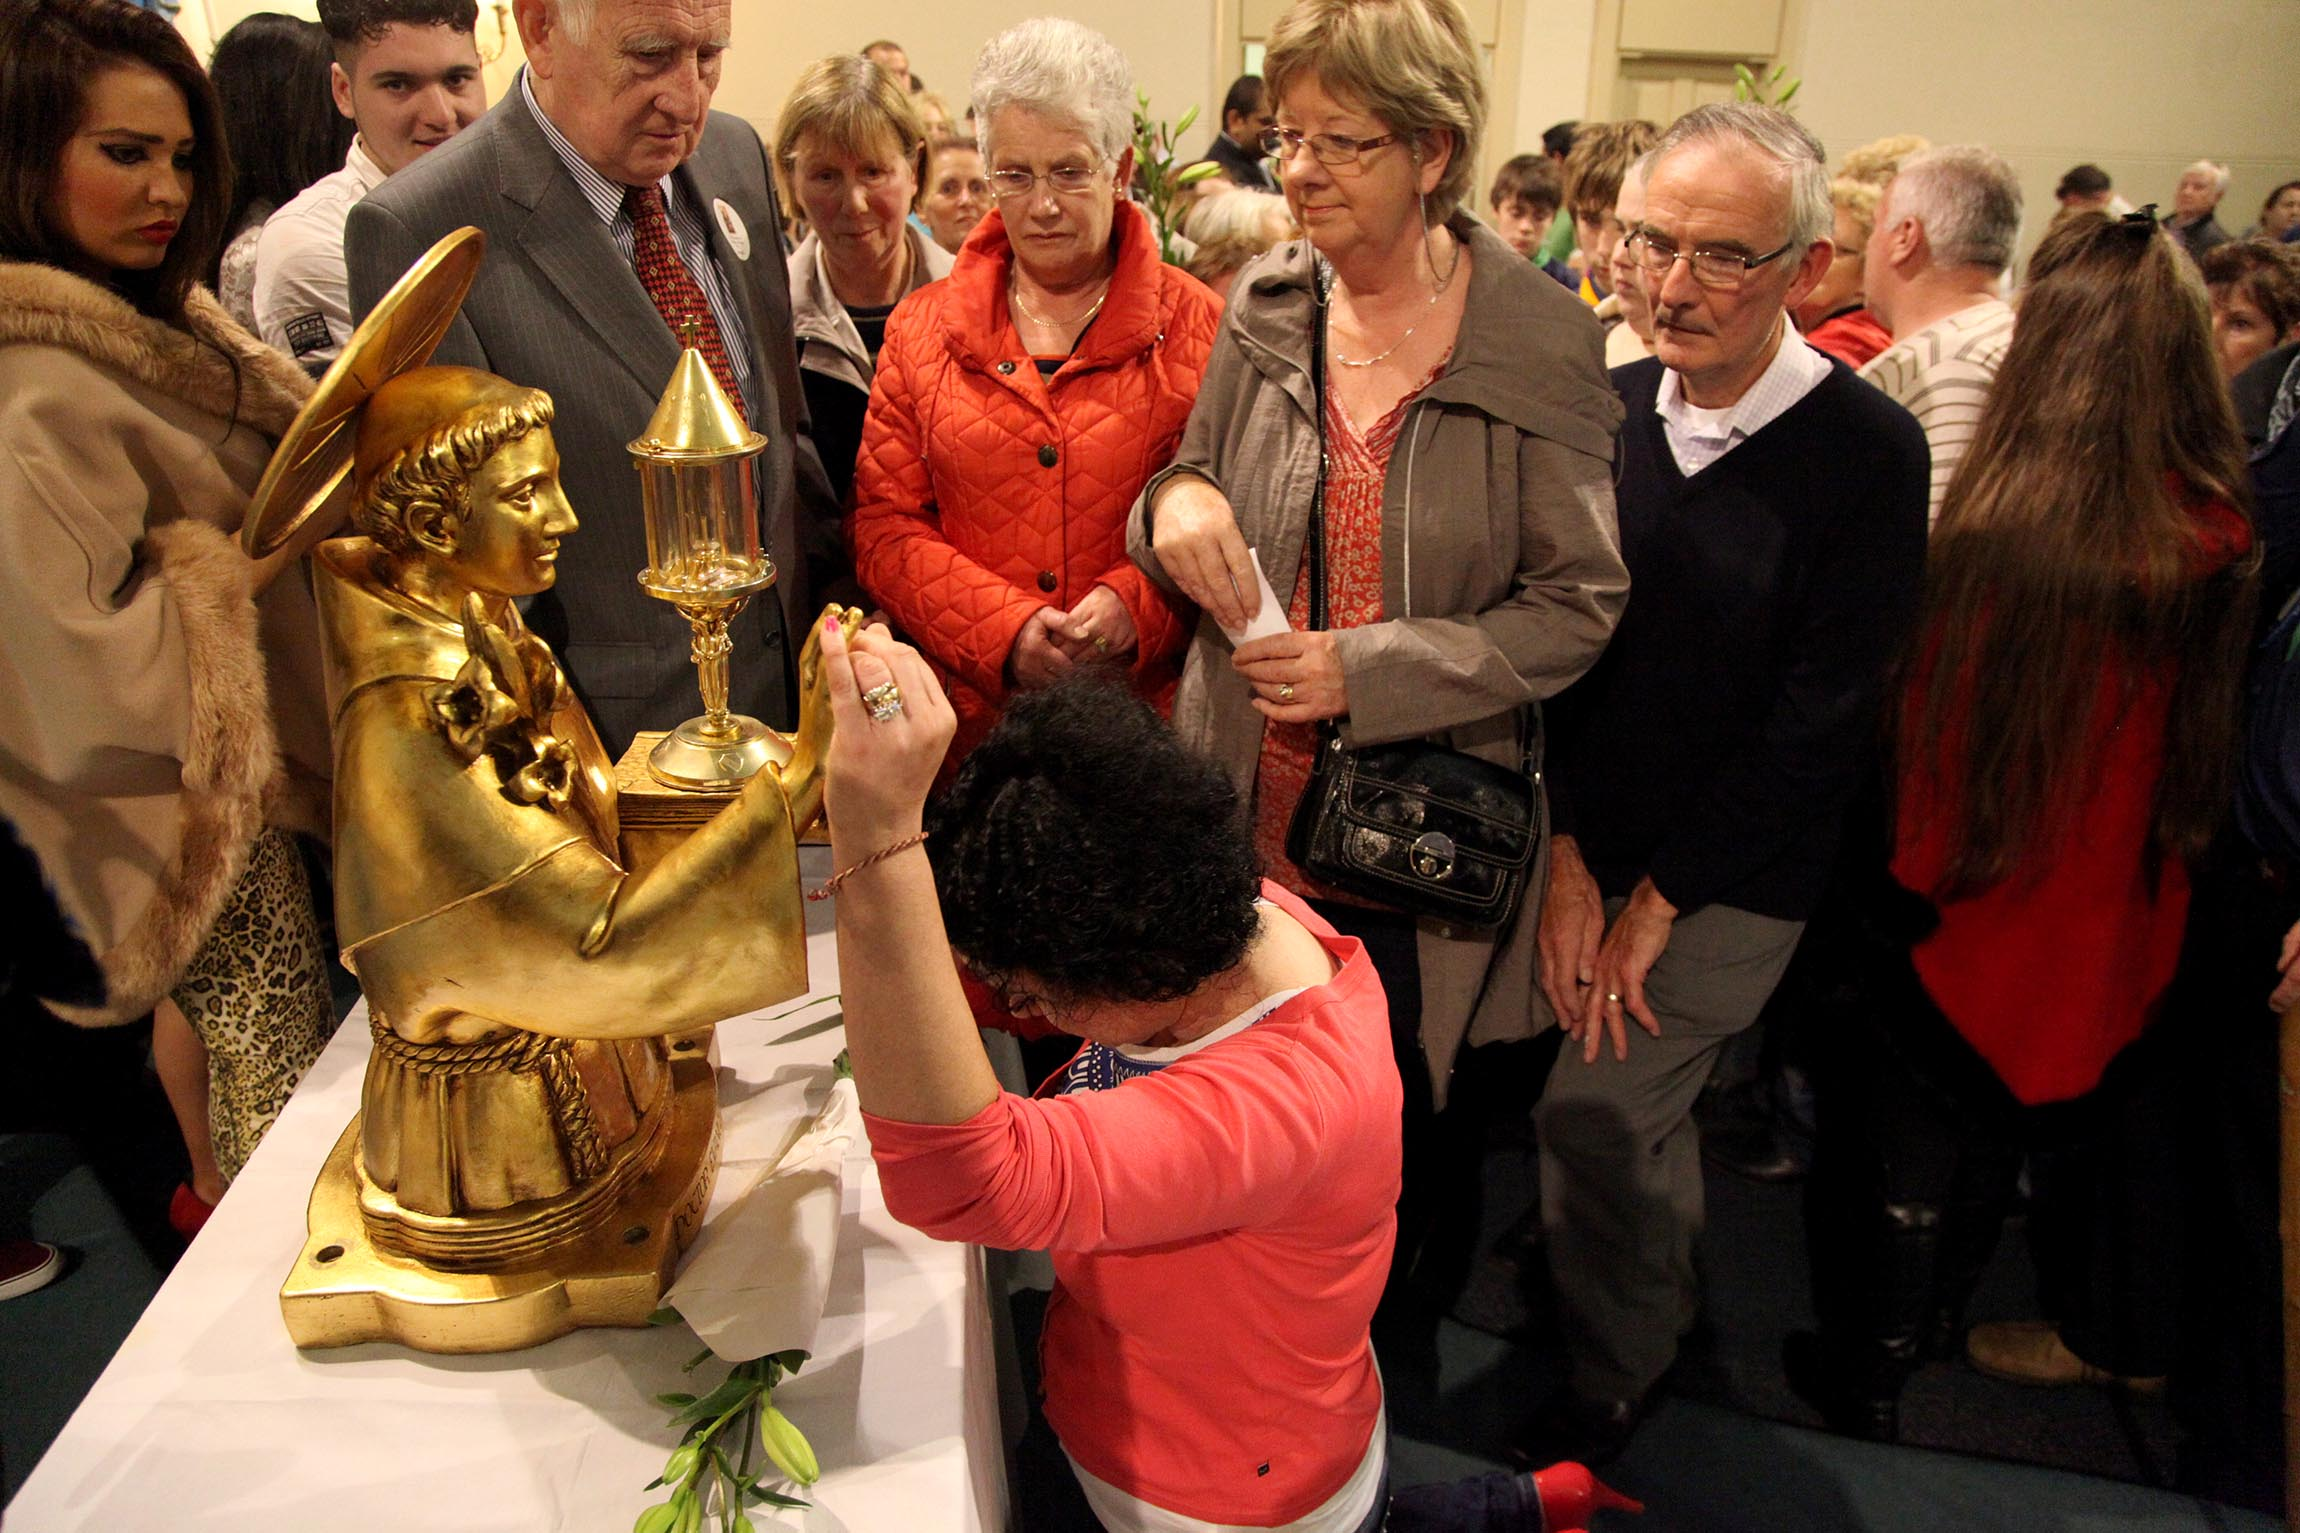 250000 venerated st anthonys relics in ireland and uk